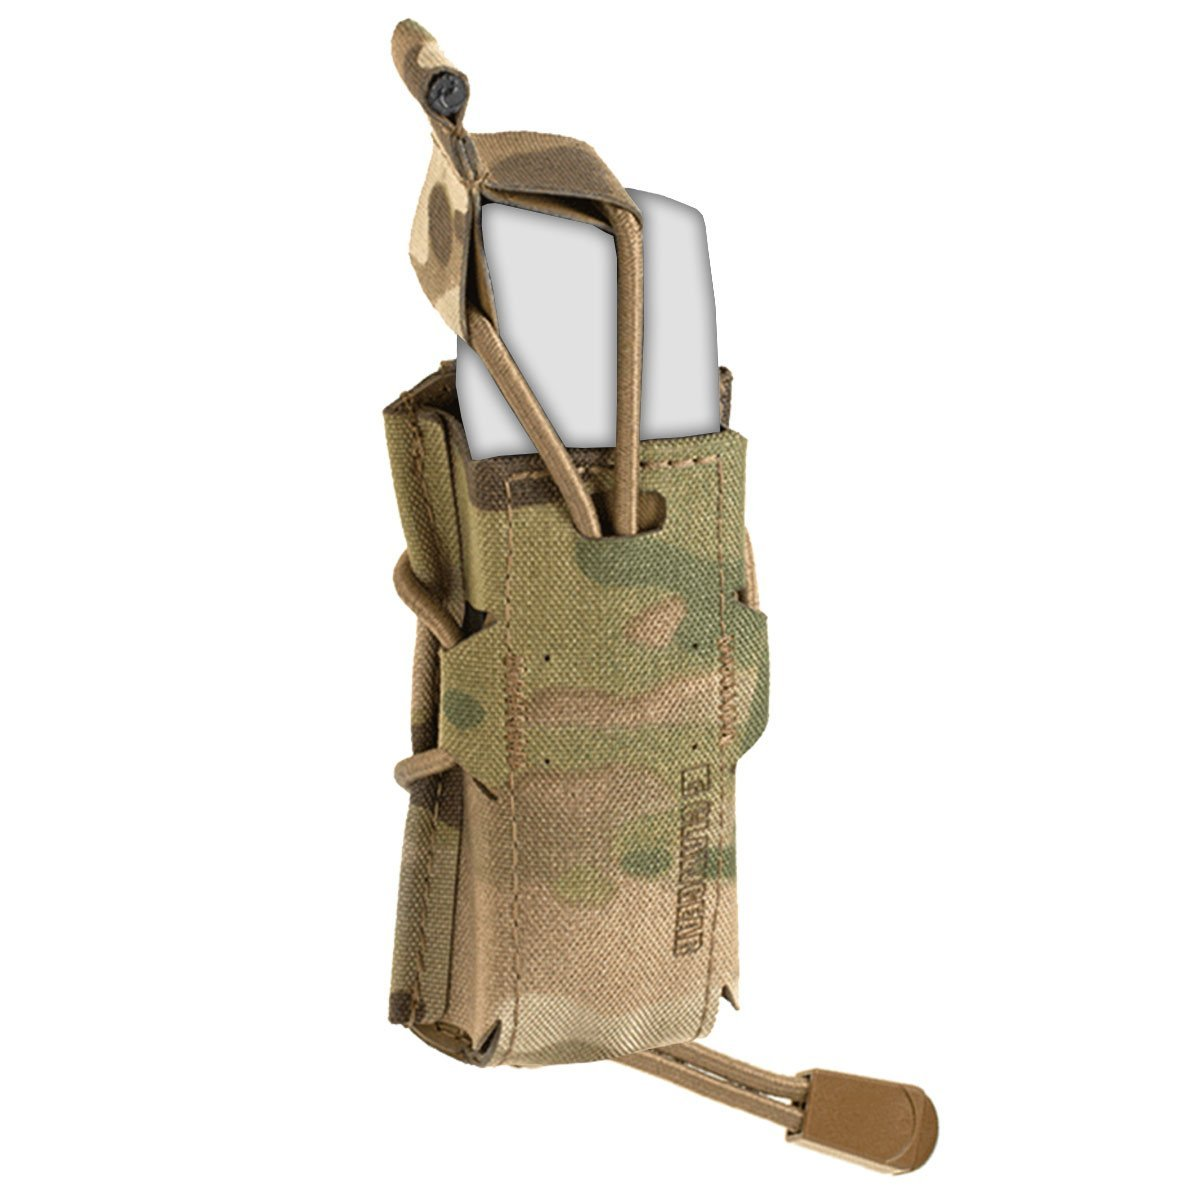 Clawgear Universal Pistol Mag Pouch | UKMCPro